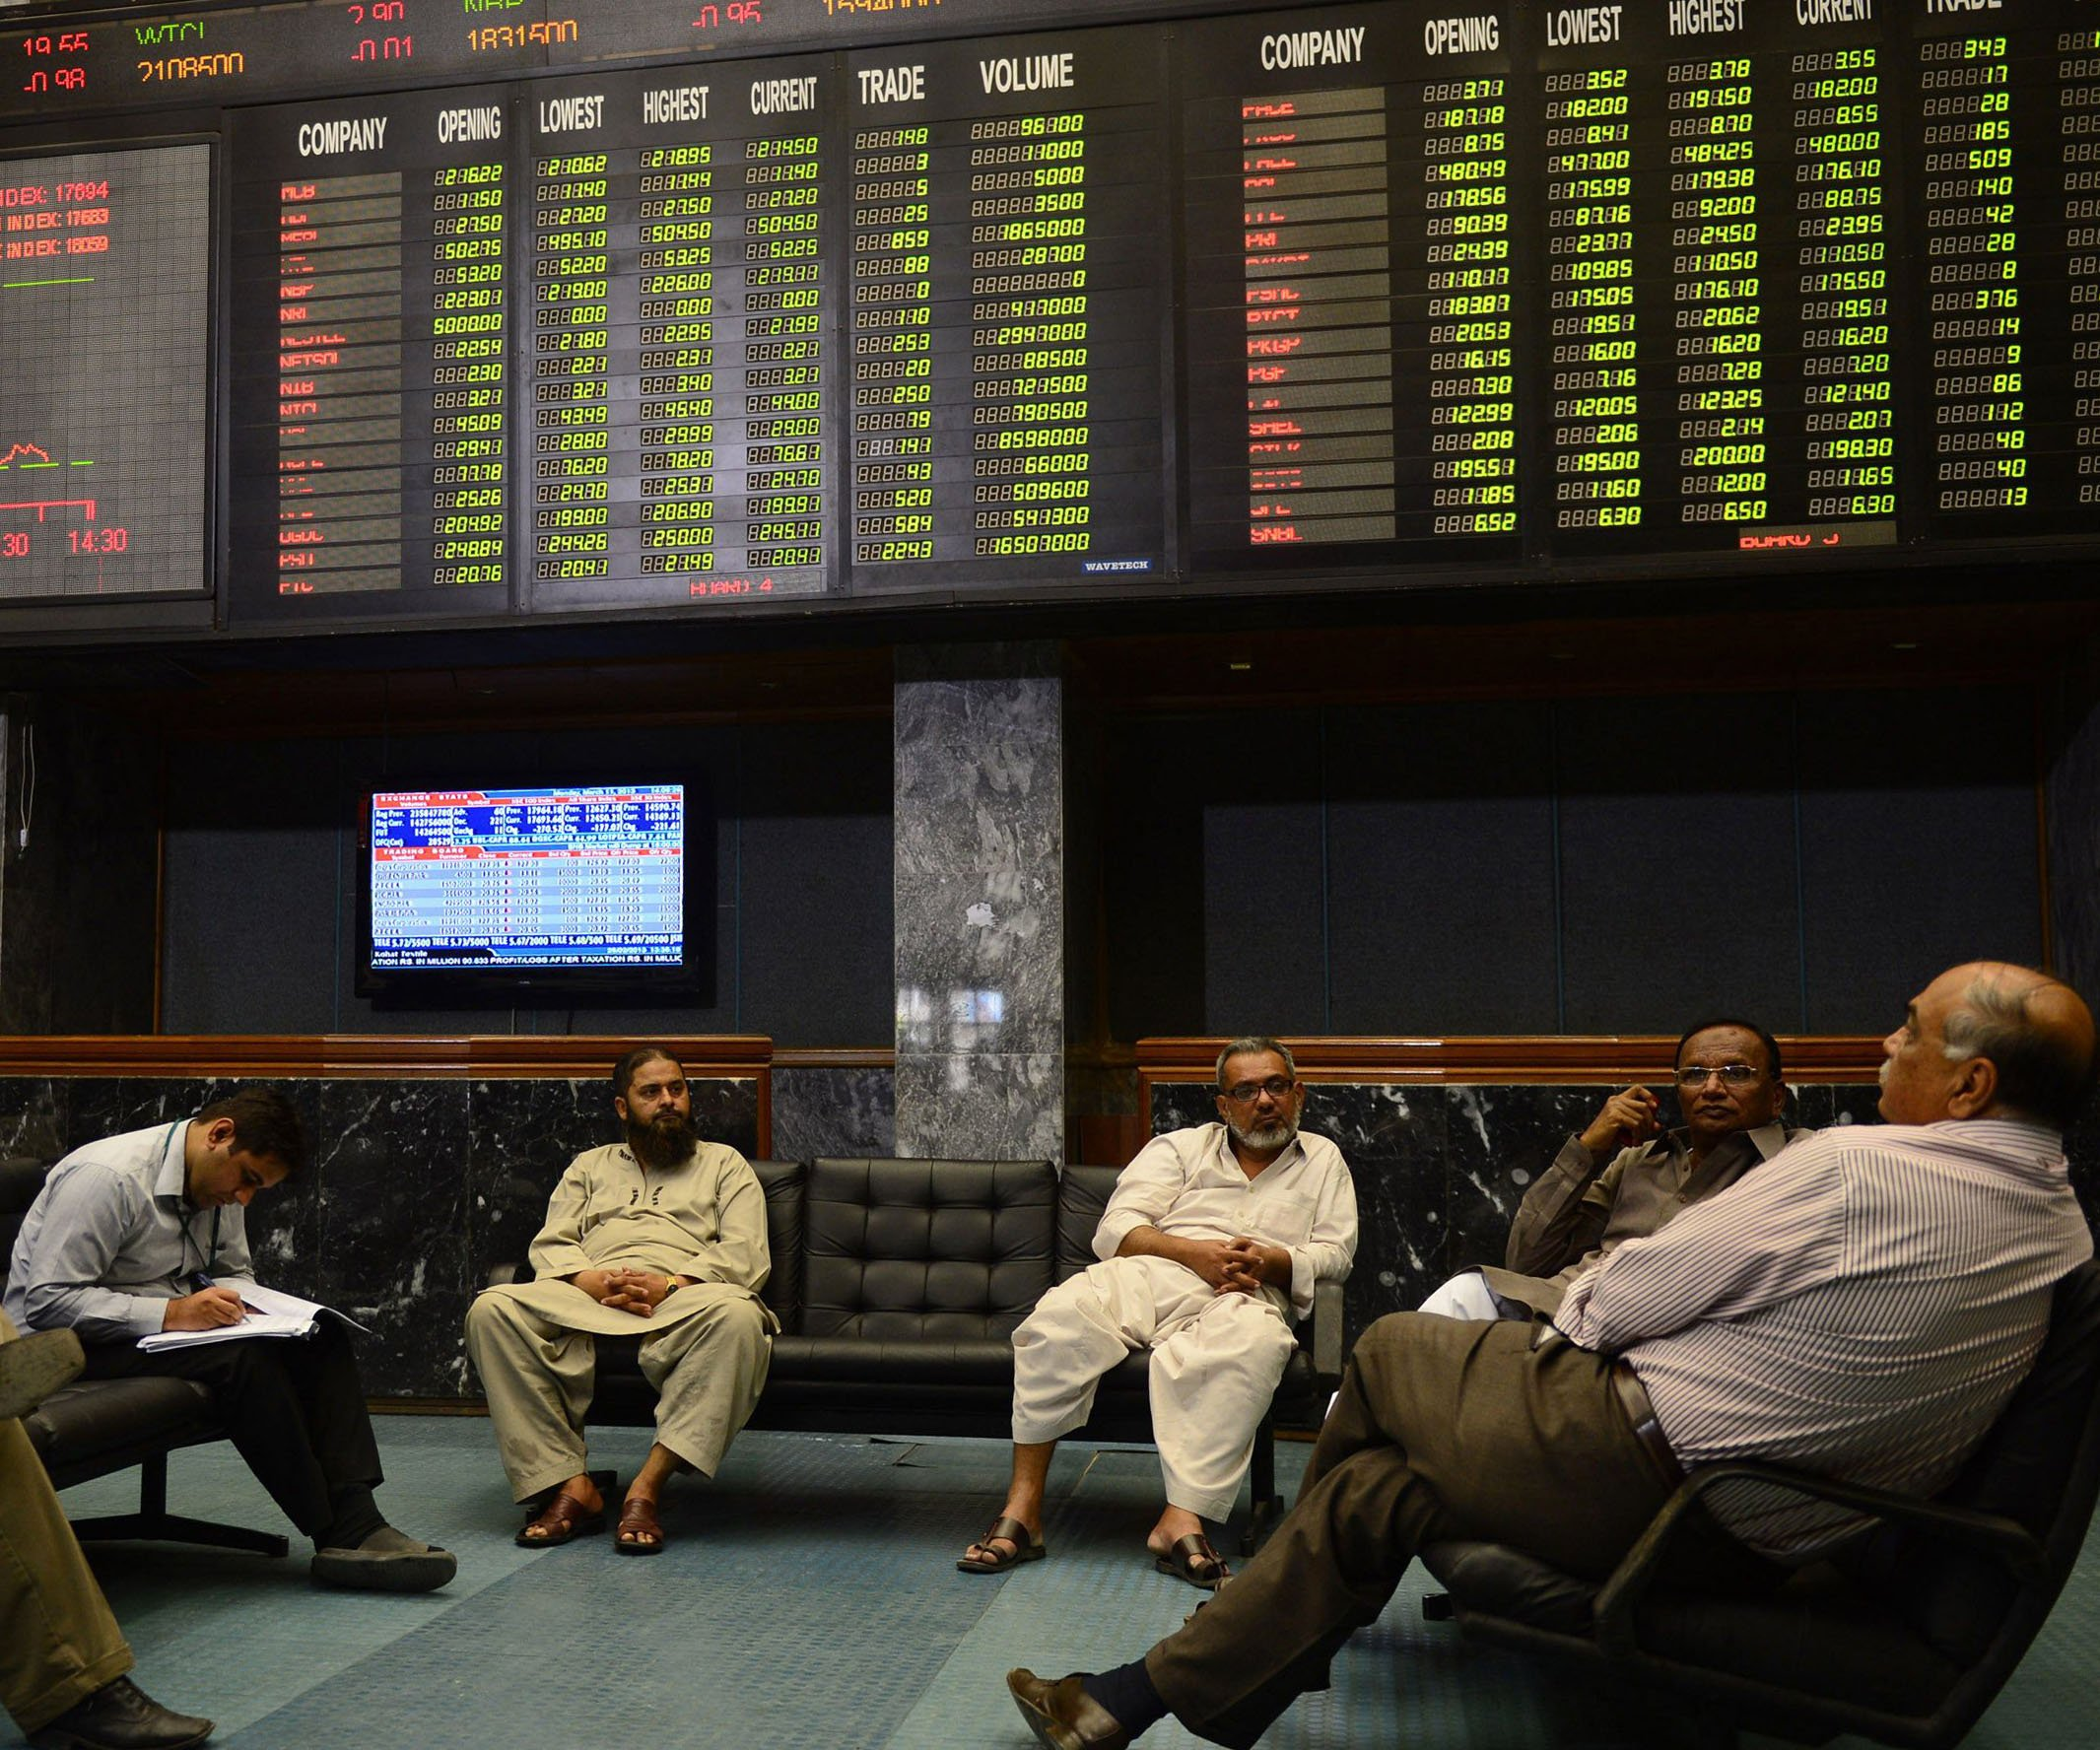 benchmark index inches up 5 69 points to settle at 37 521 81 photo afp